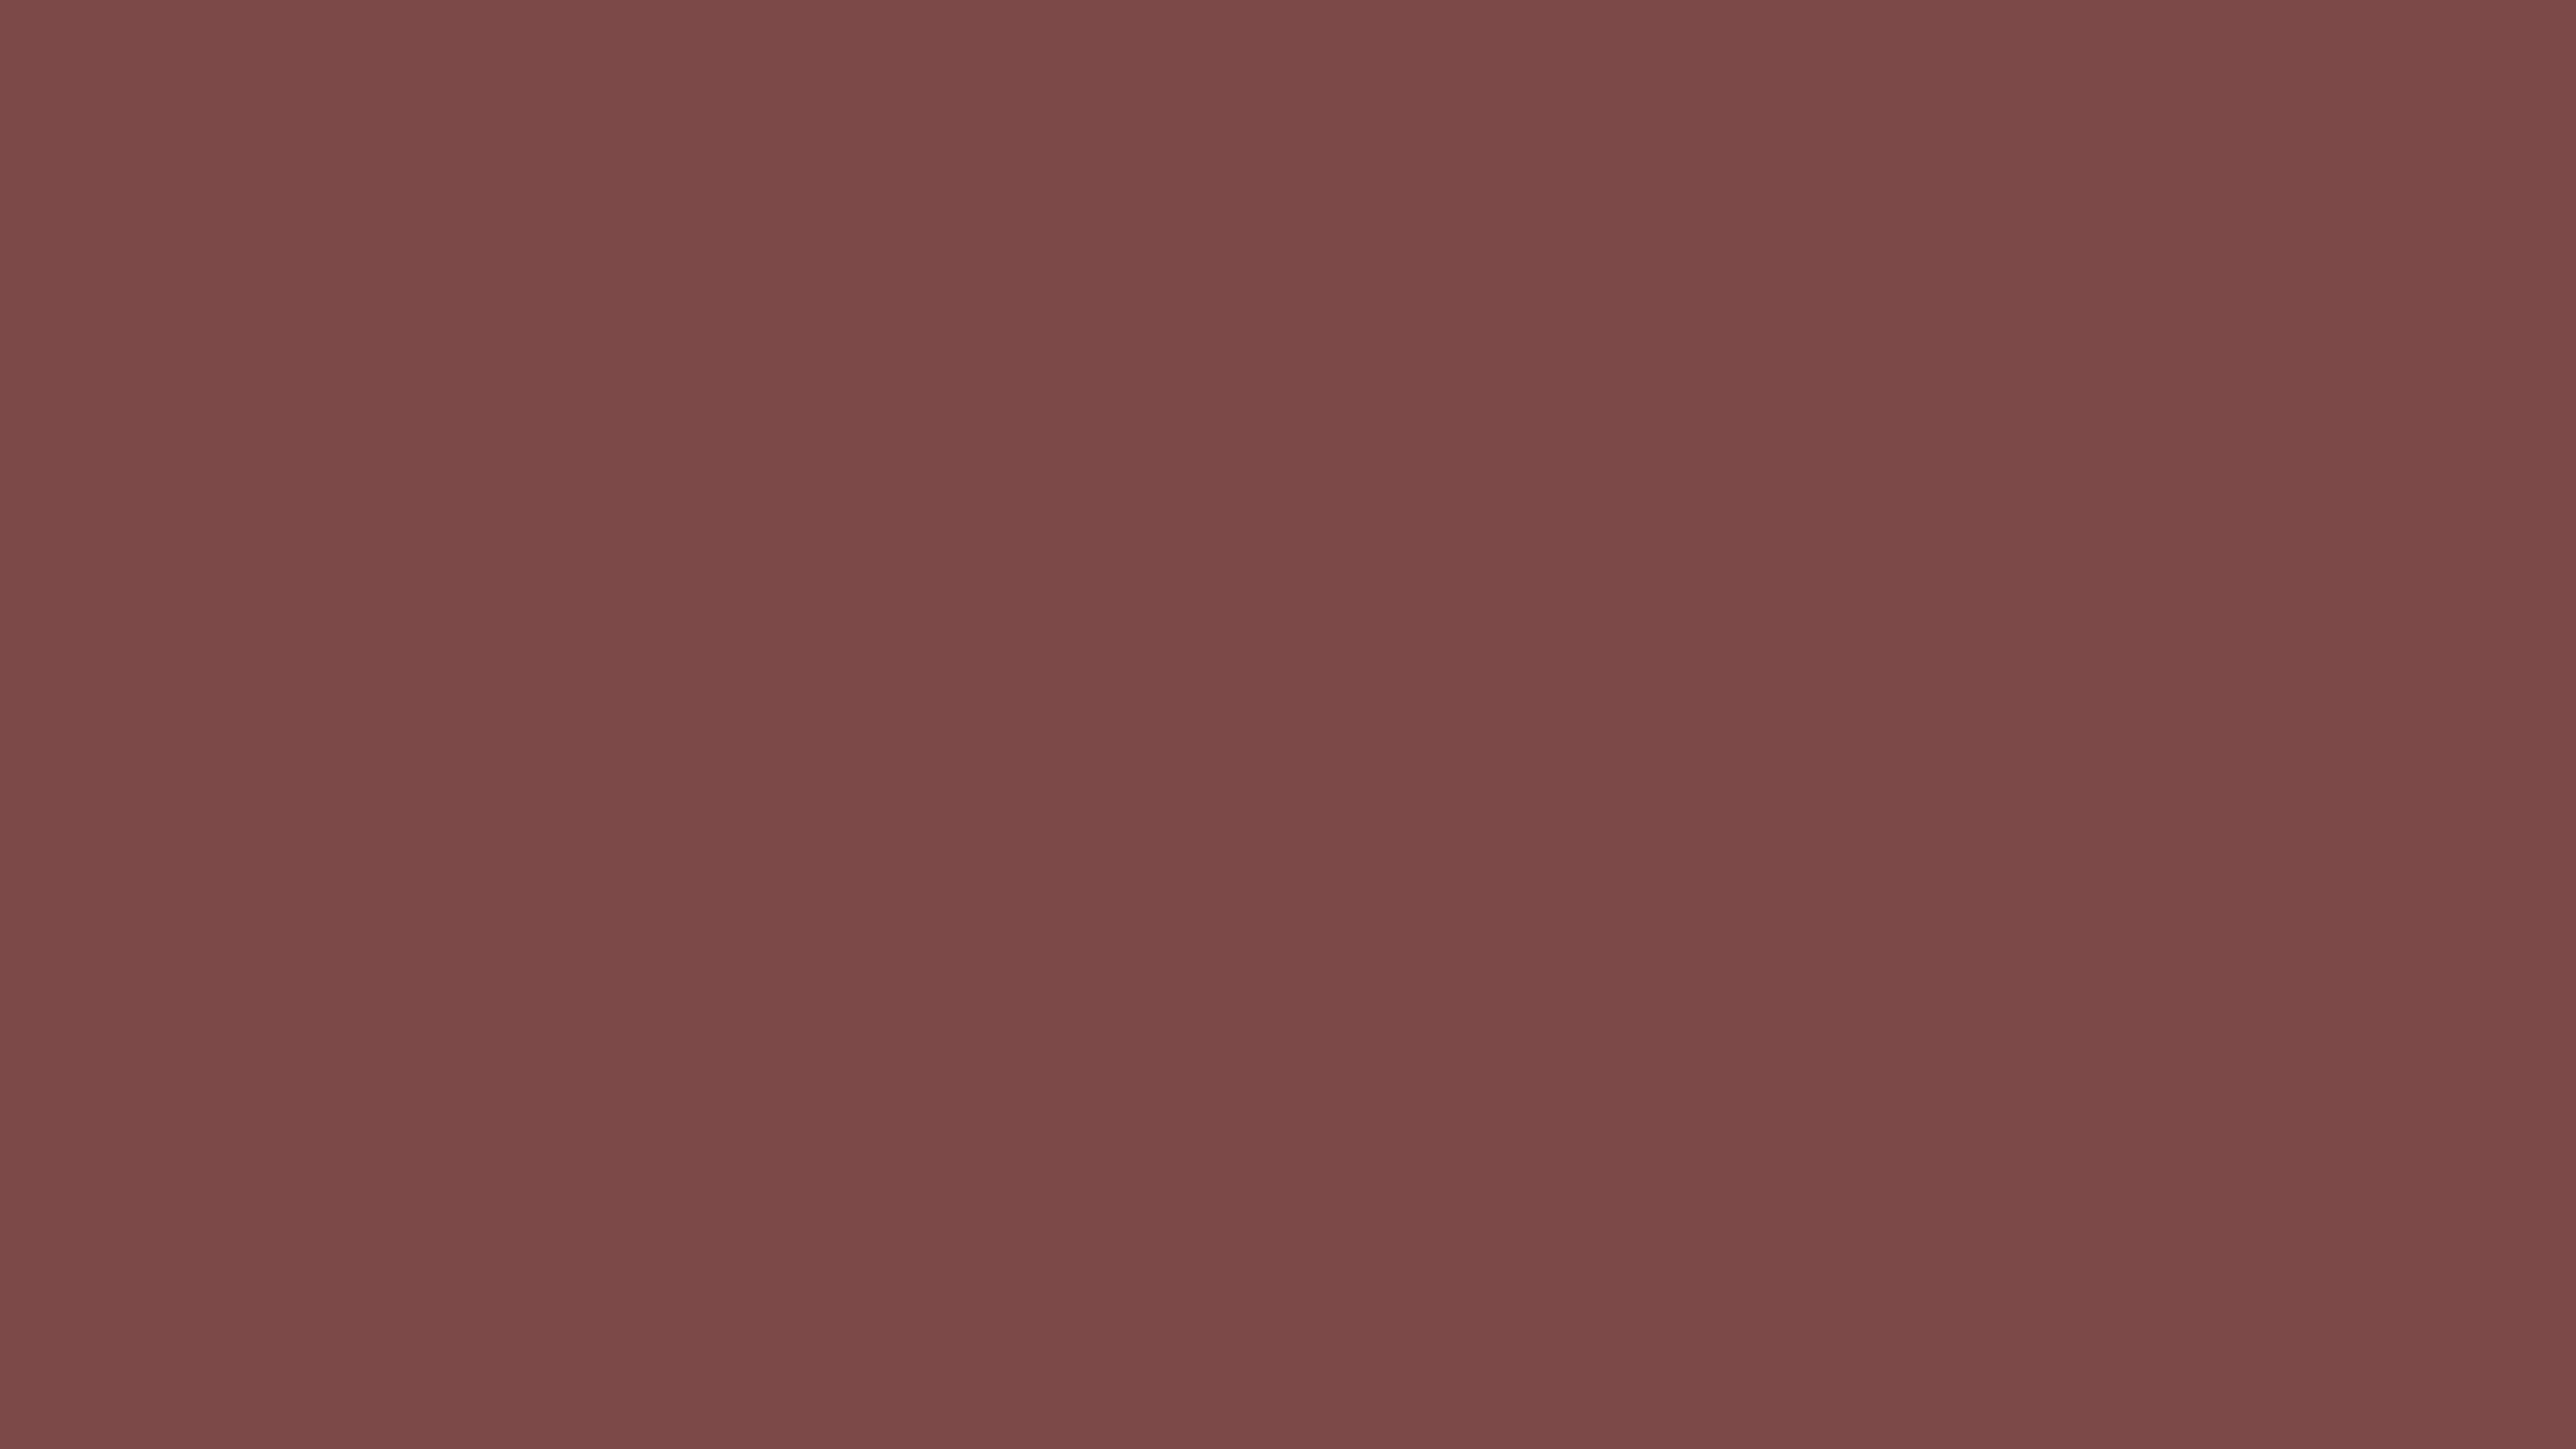 3840x2160 Tuscan Red Solid Color Background